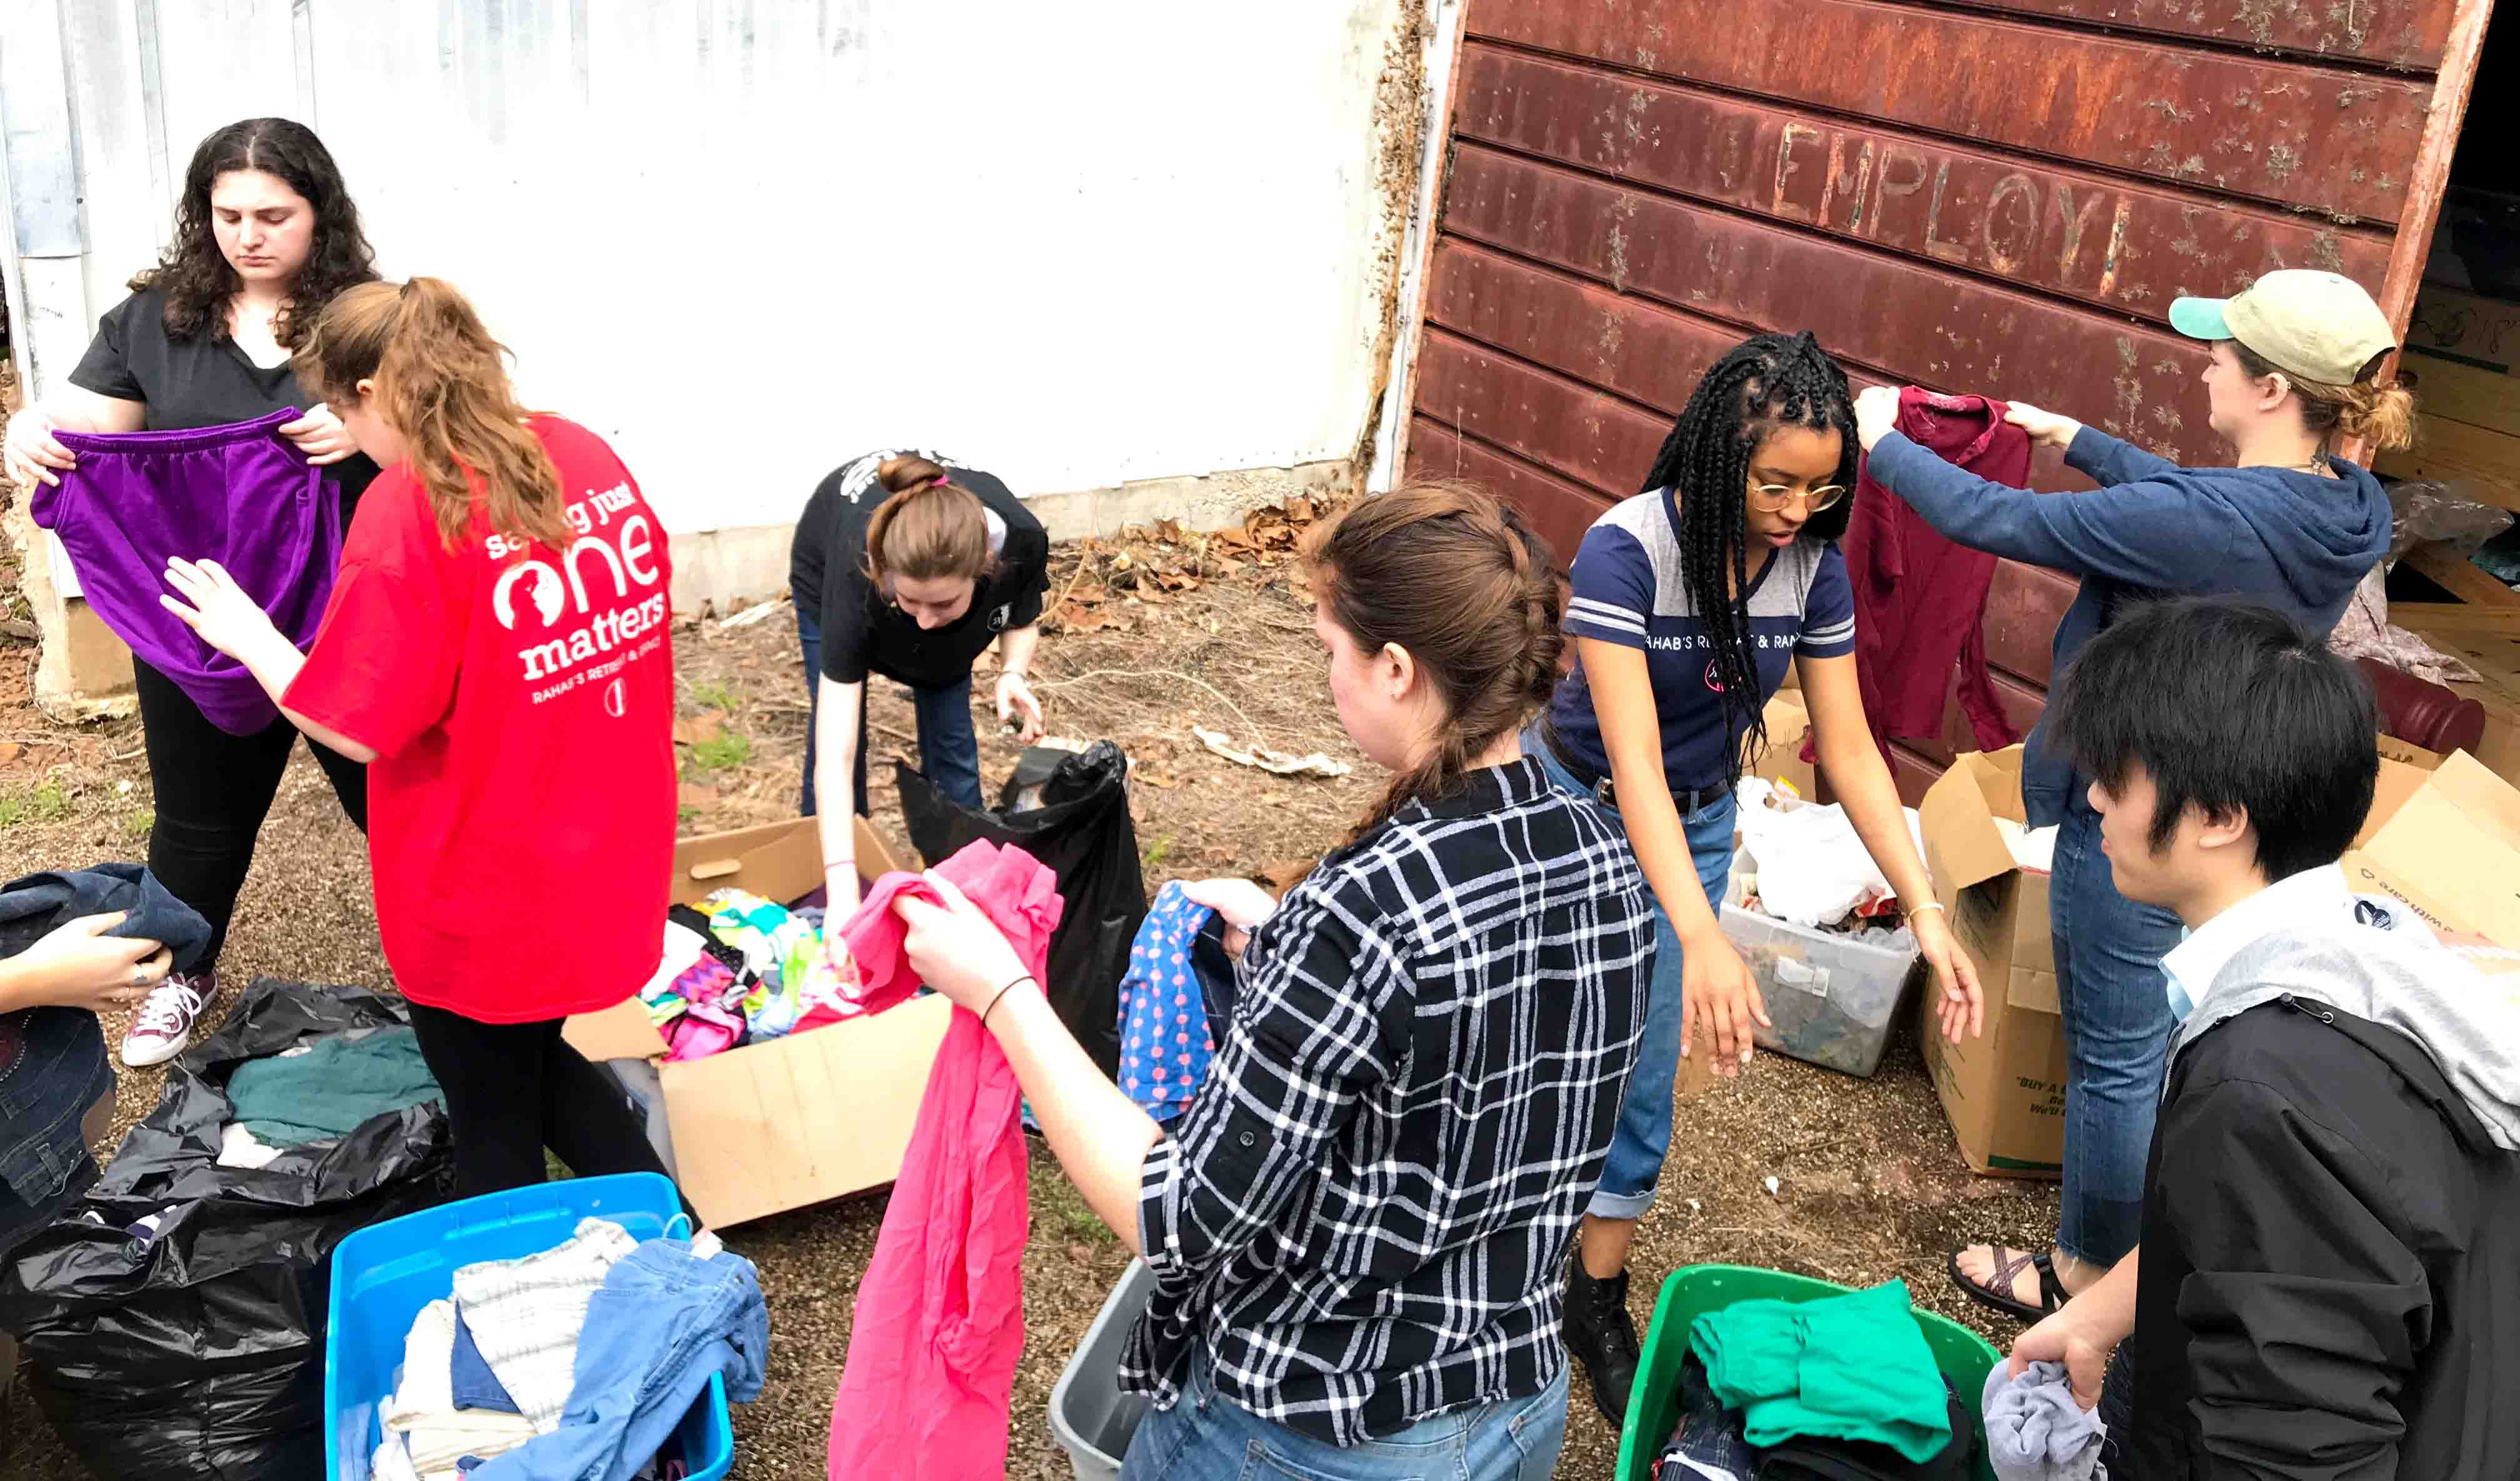 Students sort clothes during their Alternative School Break trip to serve and learn about the Texas criminal justice system.